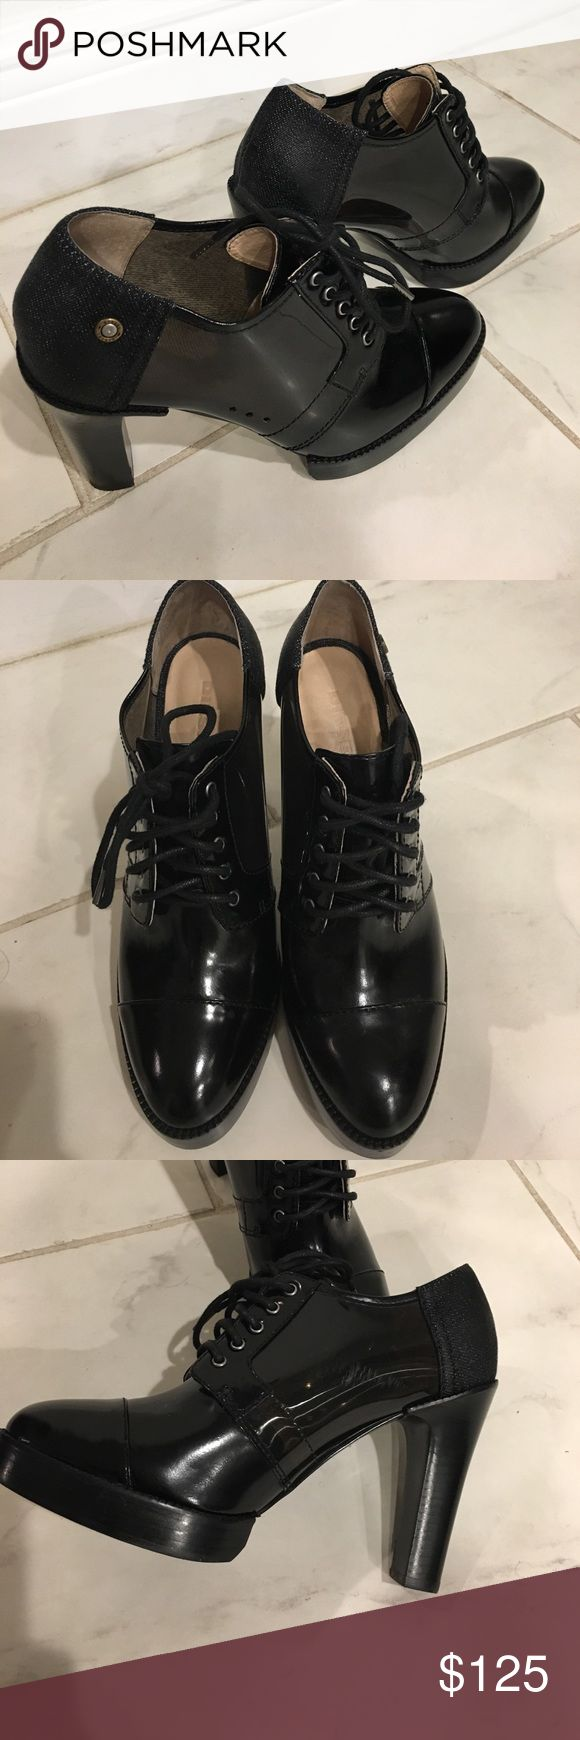 Shoes Gorgeous 3in diesel heels. Almond toe black. Clear in center of shoe. Size 38 euro. 8 us. Great condition wore only once. Minimal wear. Diesel Shoes Heels